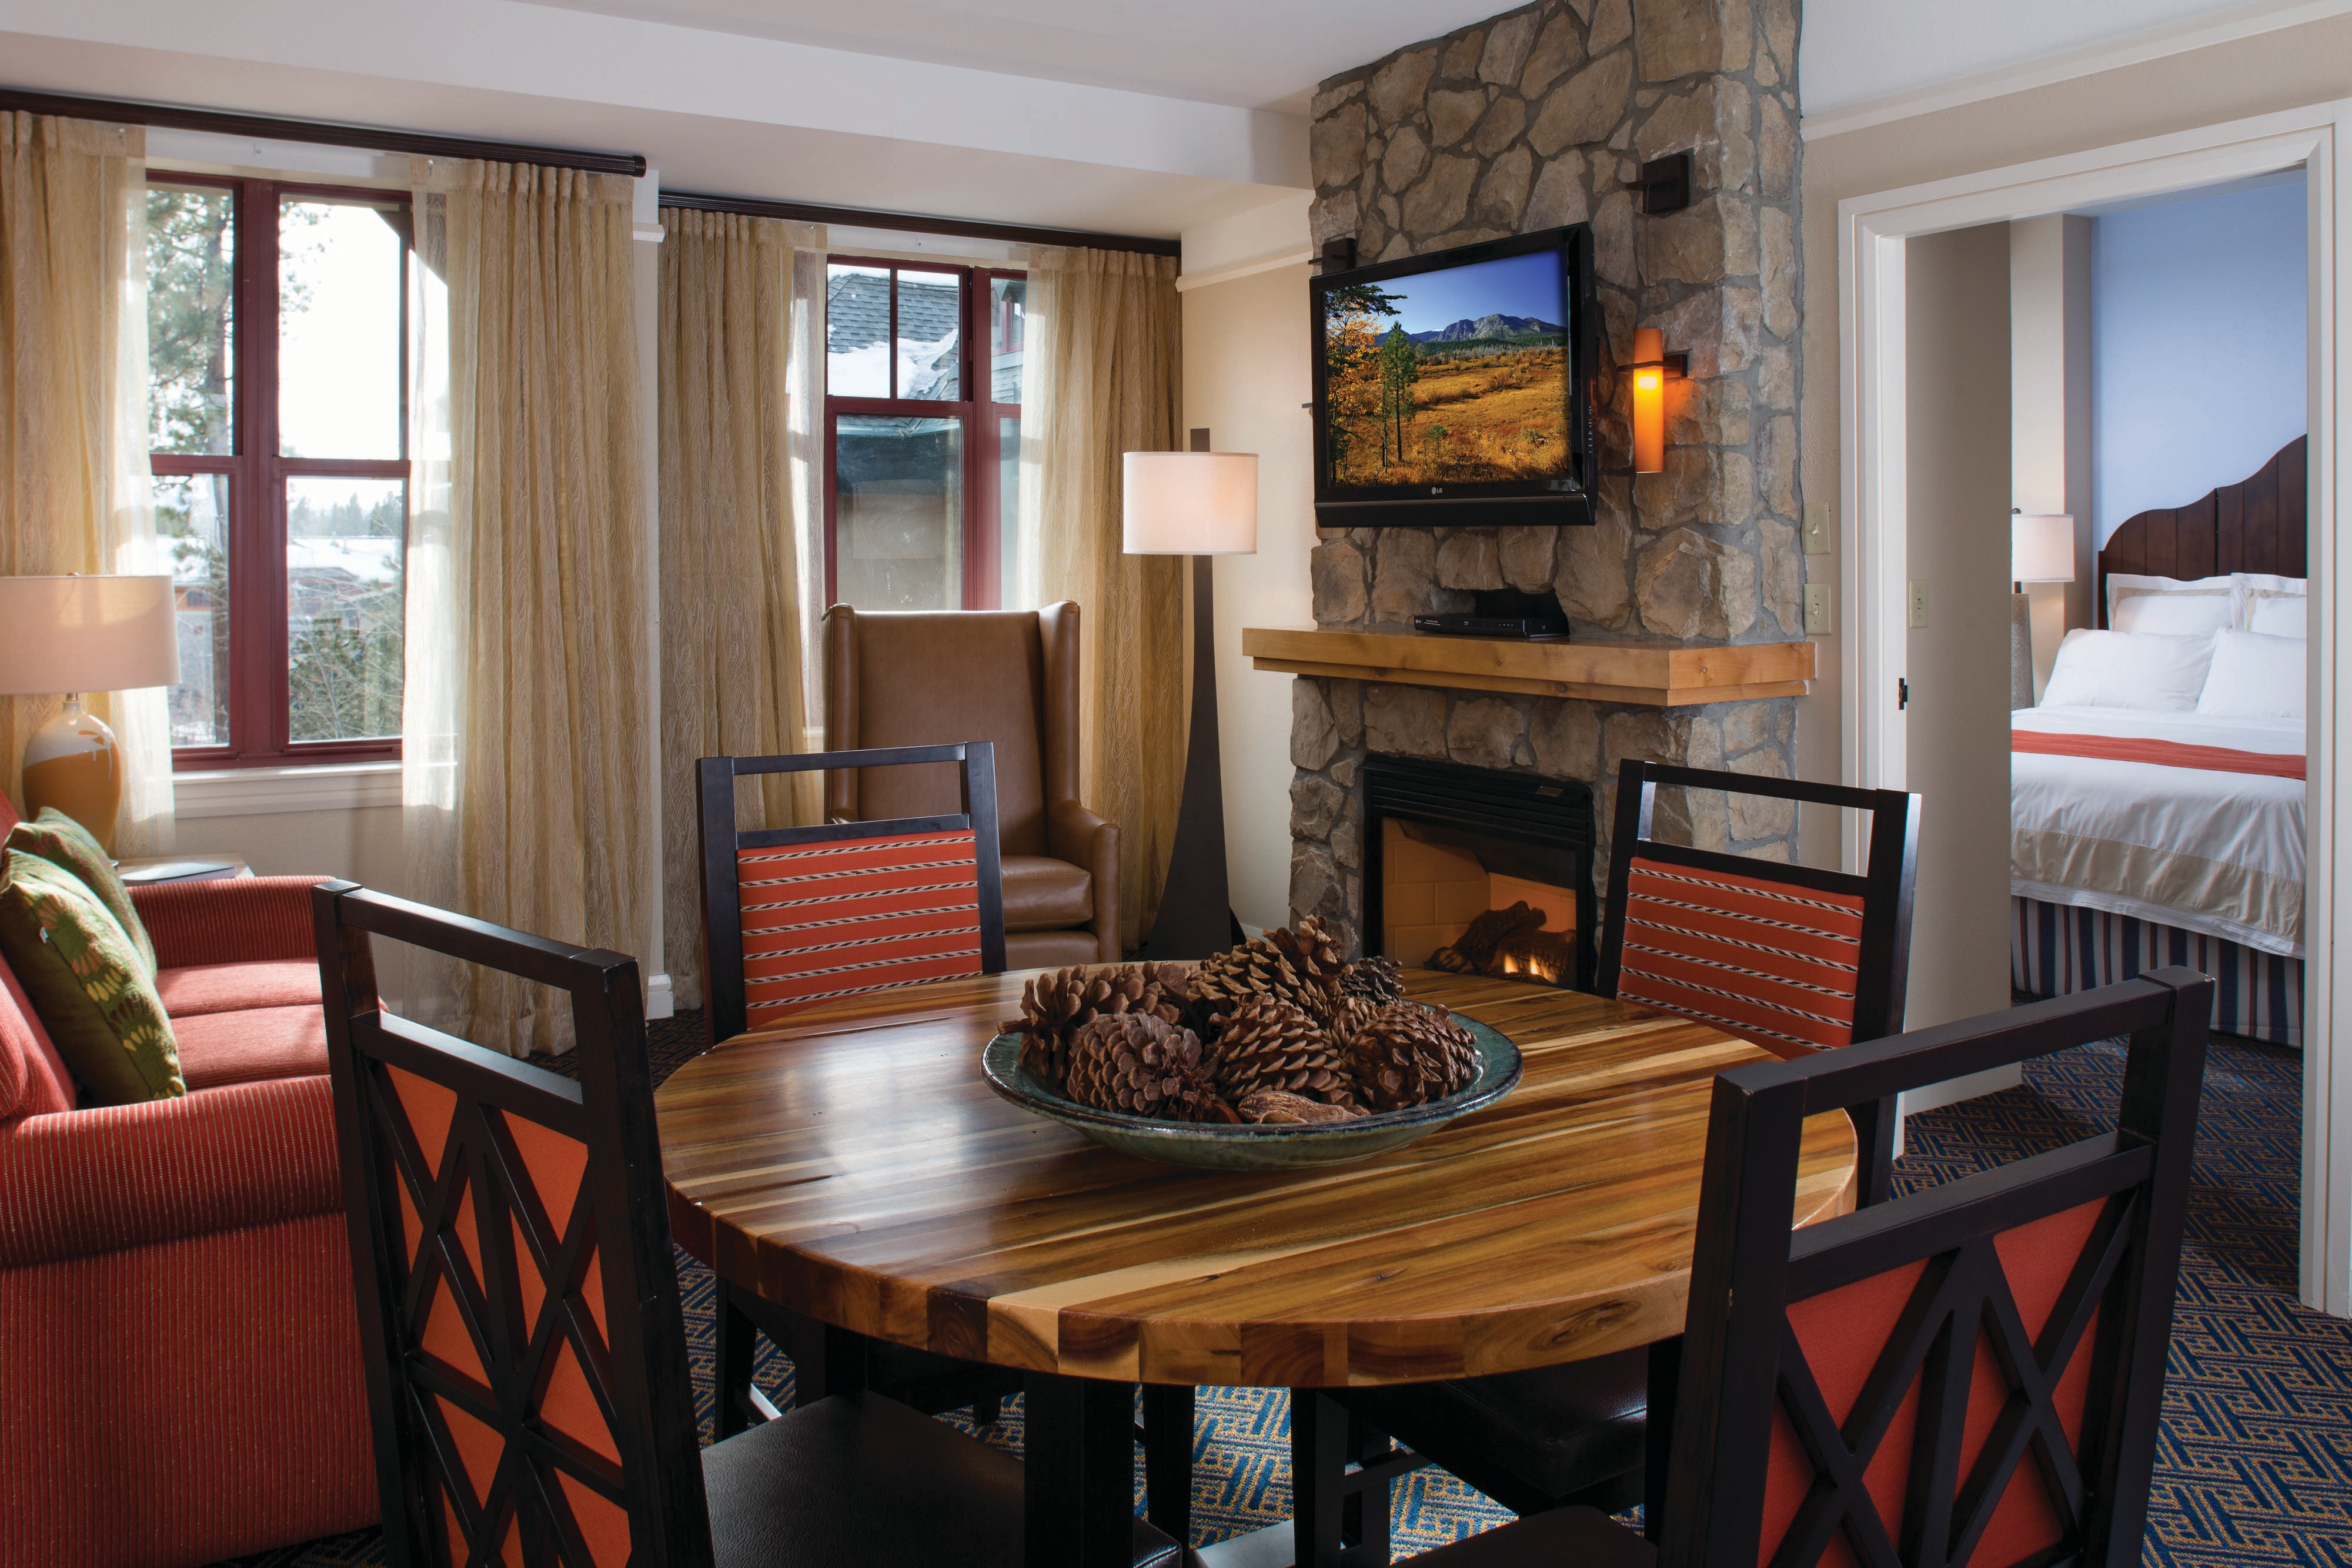 in rentals lake tahoe us property south ca home nearby more vacation cabins rental